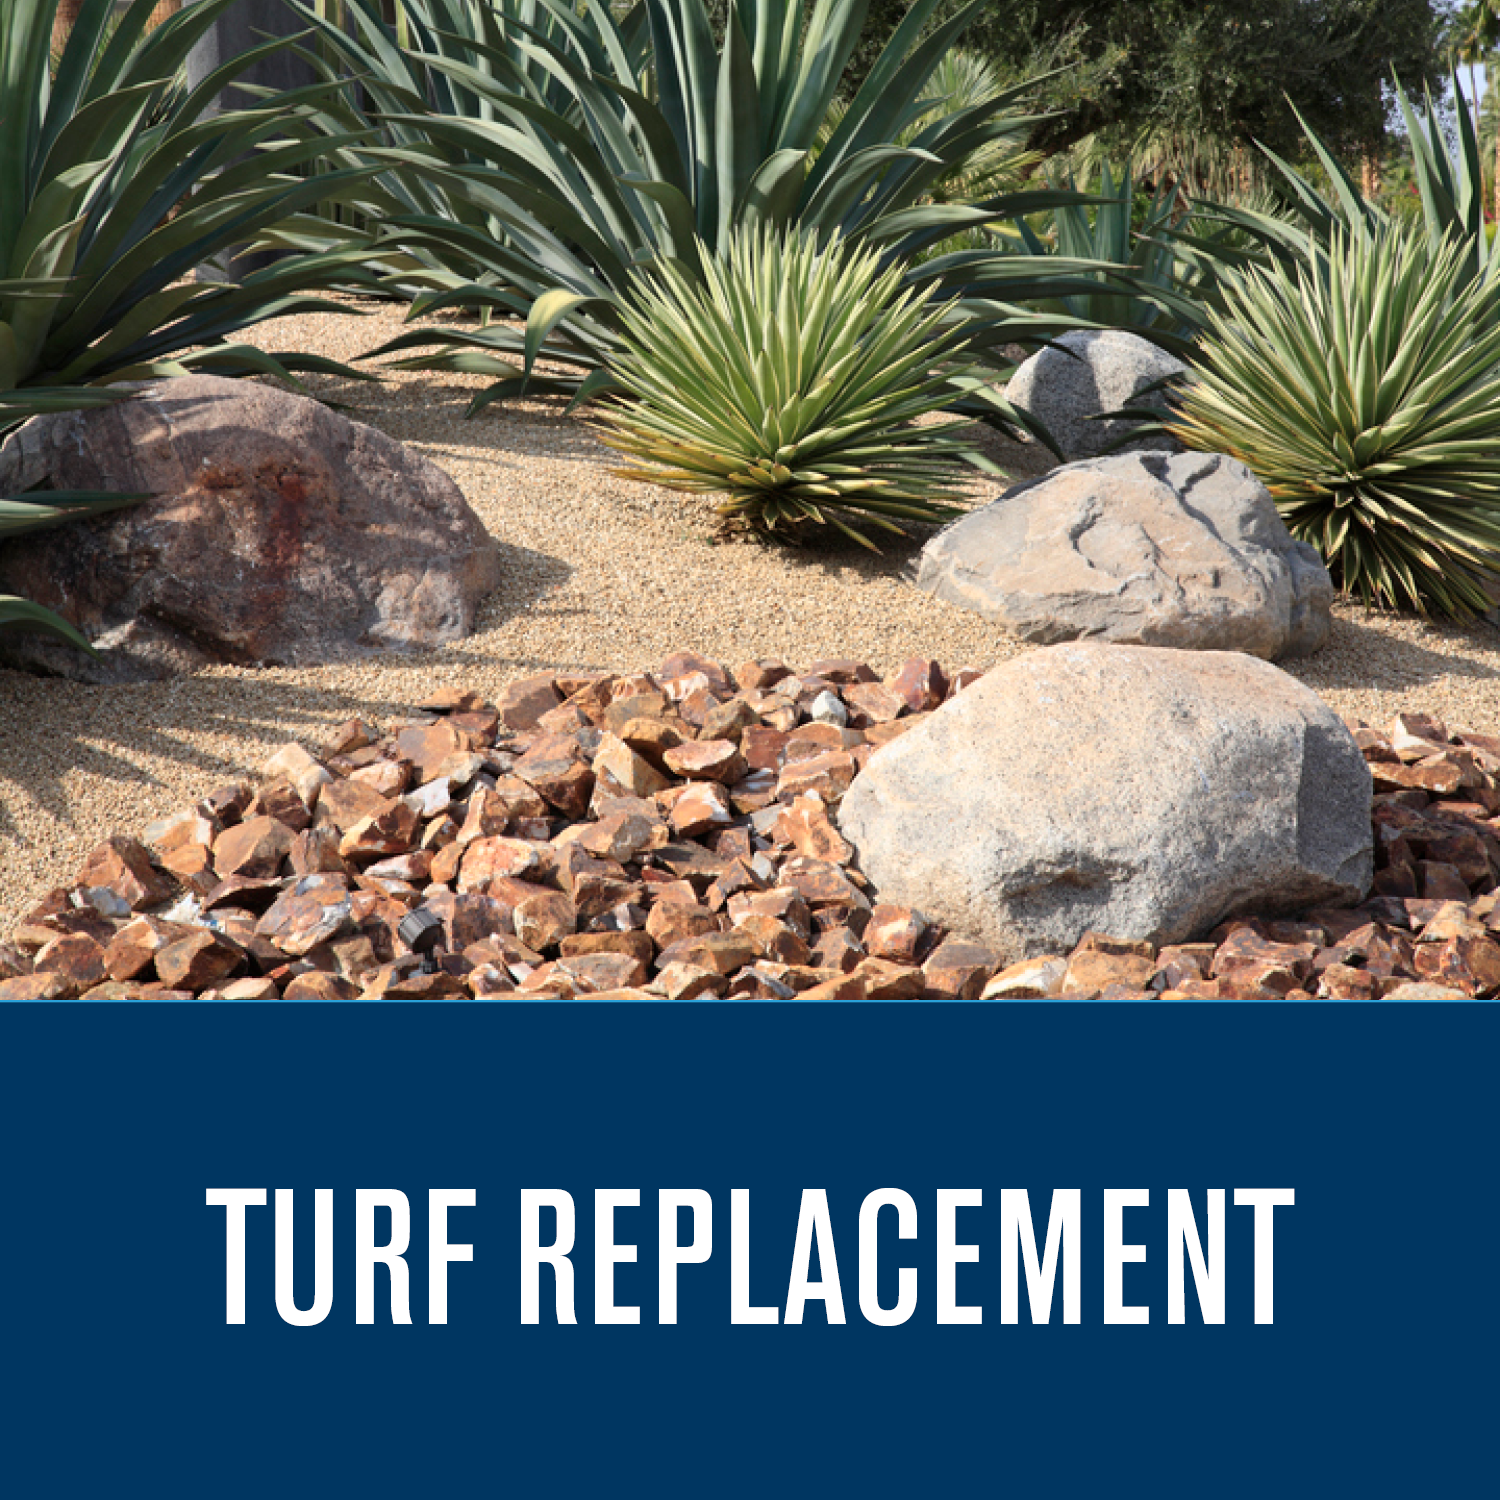 Turf Replacement